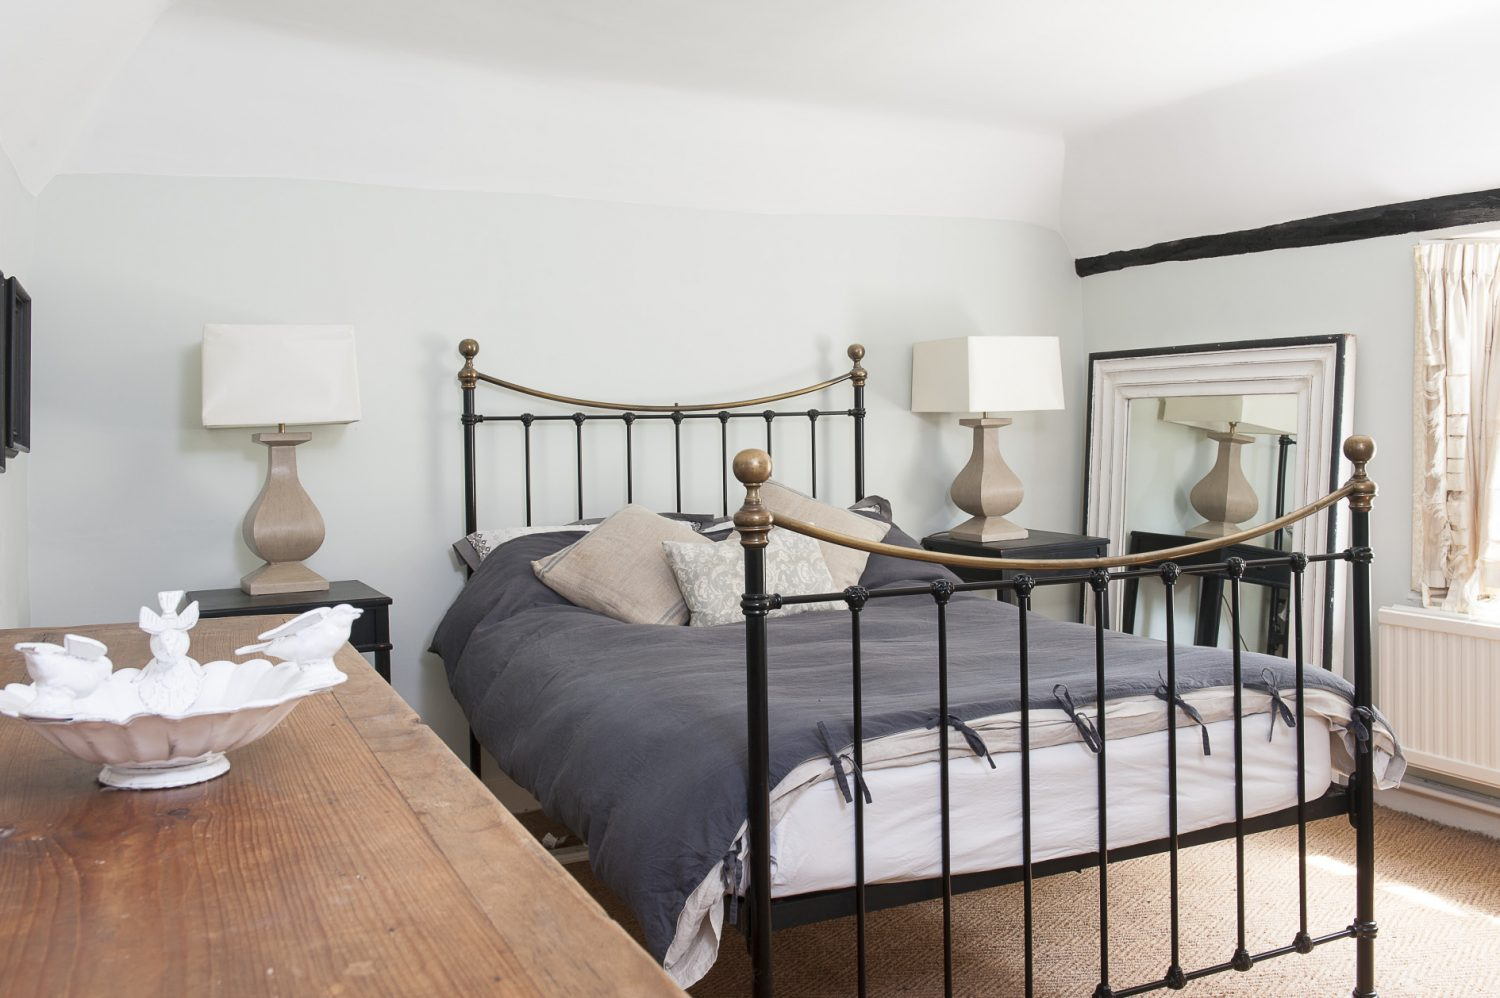 Another guest bedroom is furnished with a Victorian brass bed, along with matching side tables, stone table lamps and a large black and white-framed mirror from Homesense in Tunbridge Wells